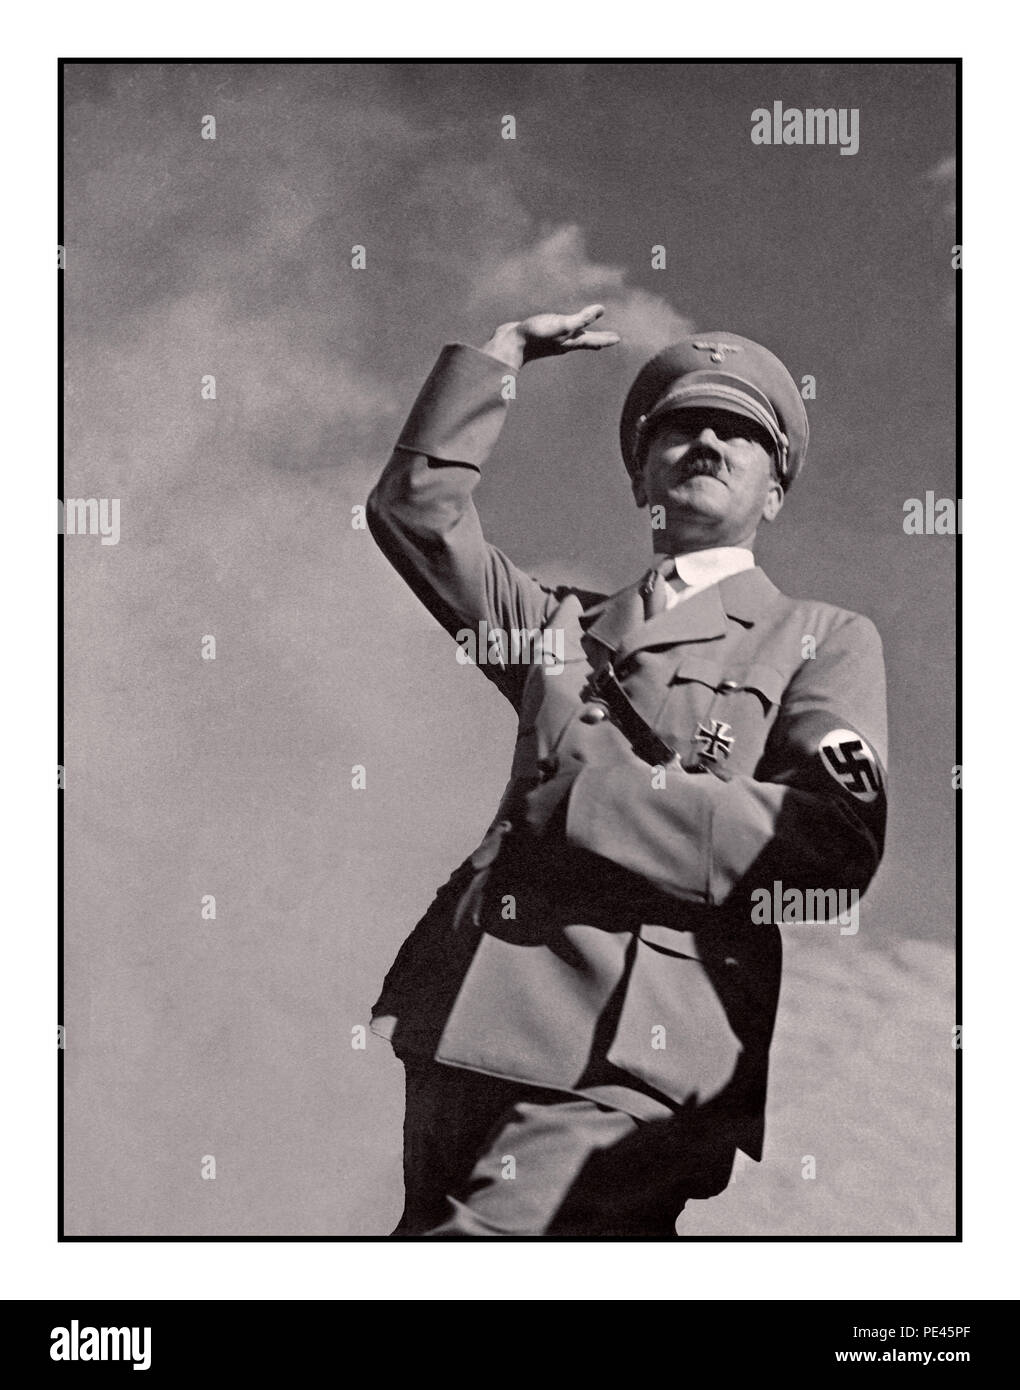 ADOLF HITLER SALUTE 1939 WW2 German propaganda  image of Adolf Hitler in military uniform wearing a Nazi swastika armband saluting 'Heil Hitler' to a crowd low angle view with sky background - Stock Image